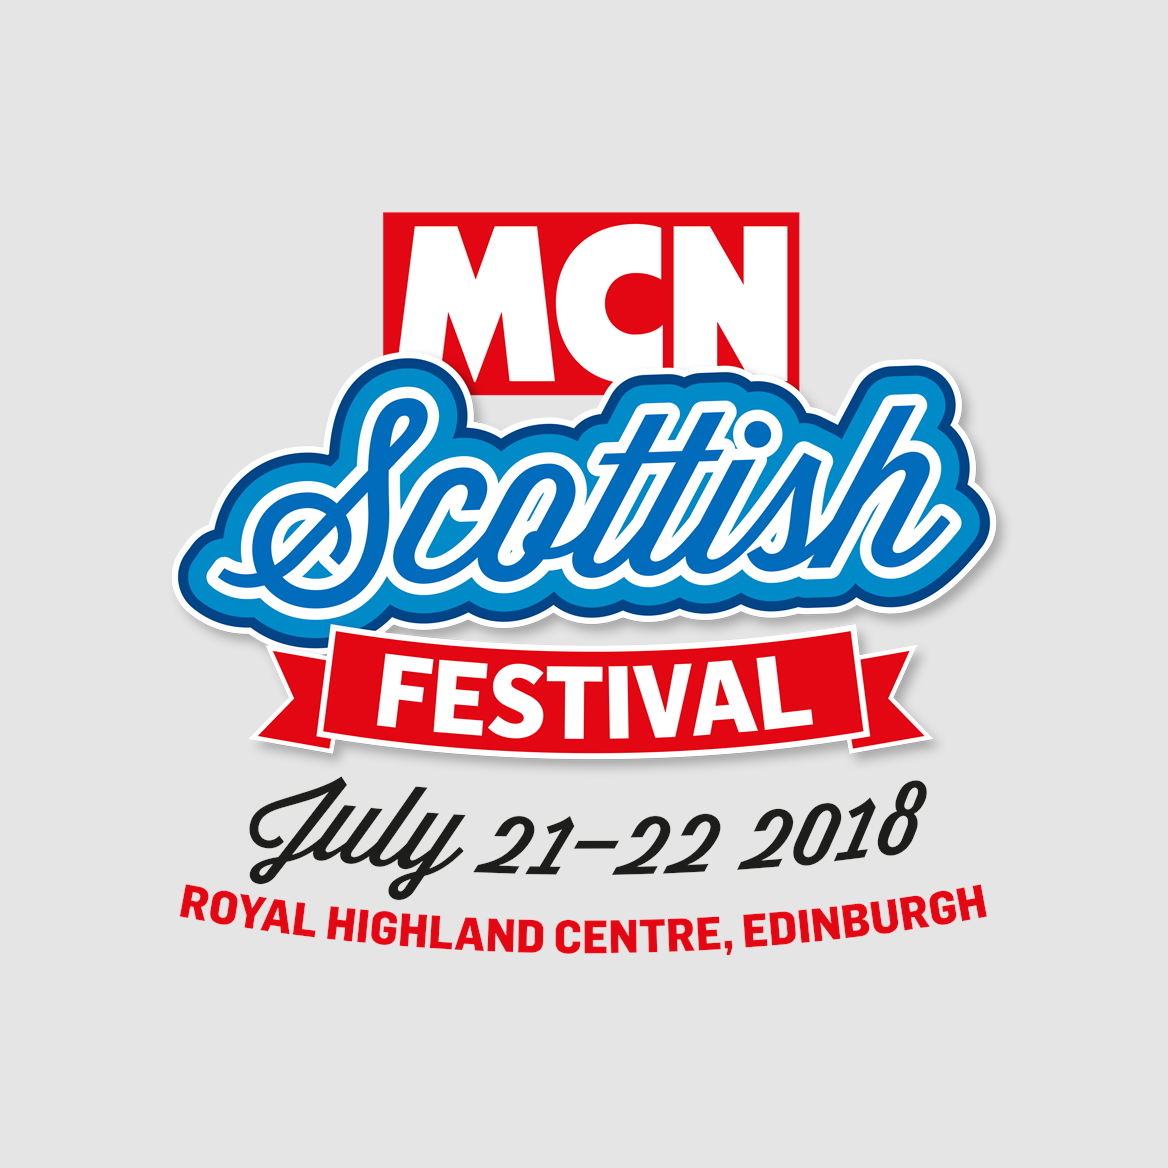 Buy tickets for this year's MCN Scottish Festival 2018 now